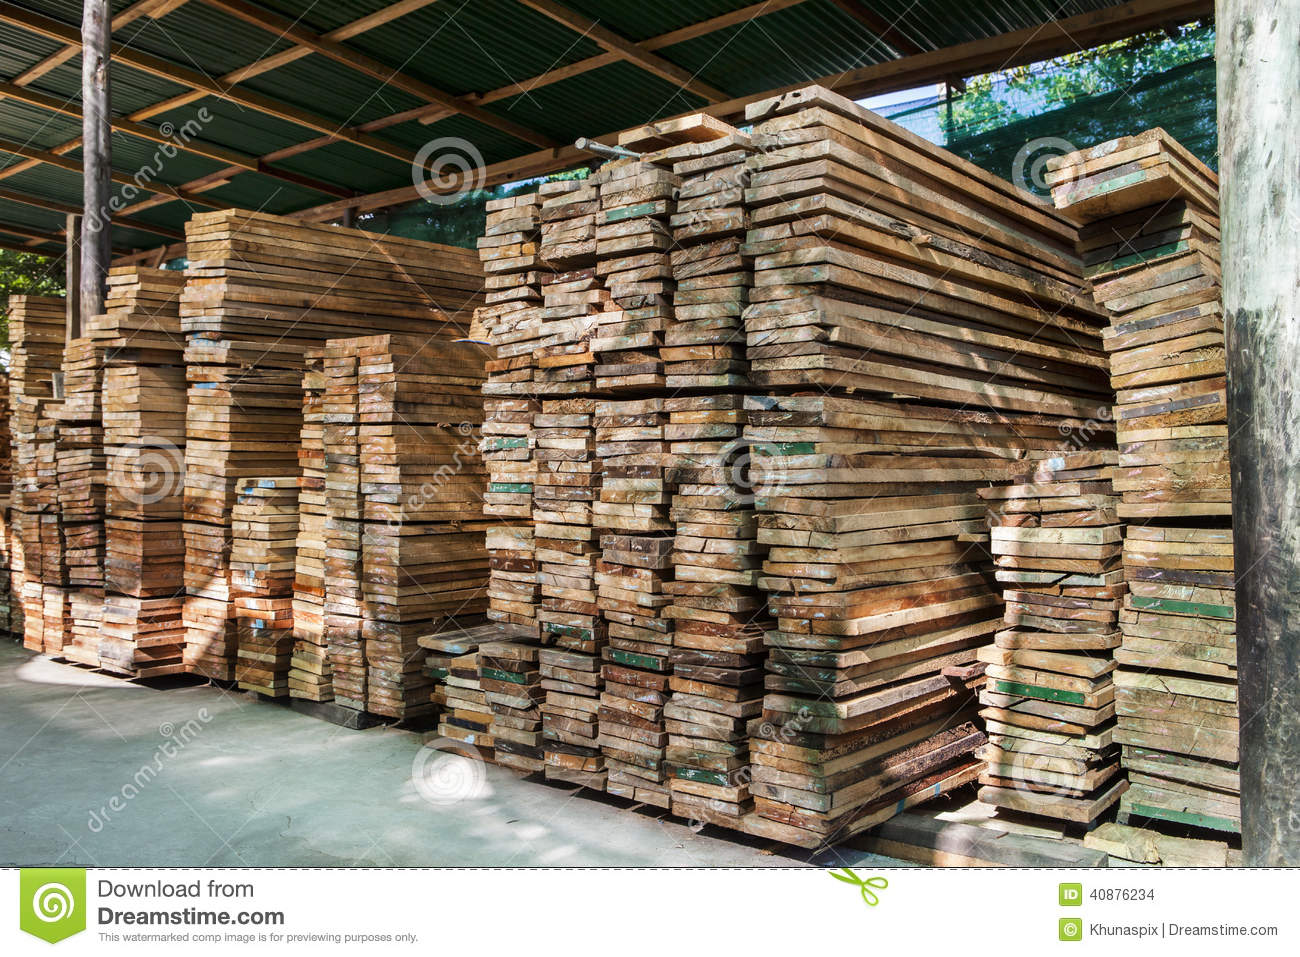 Stack of pile wood bar in lumber yard factory use for